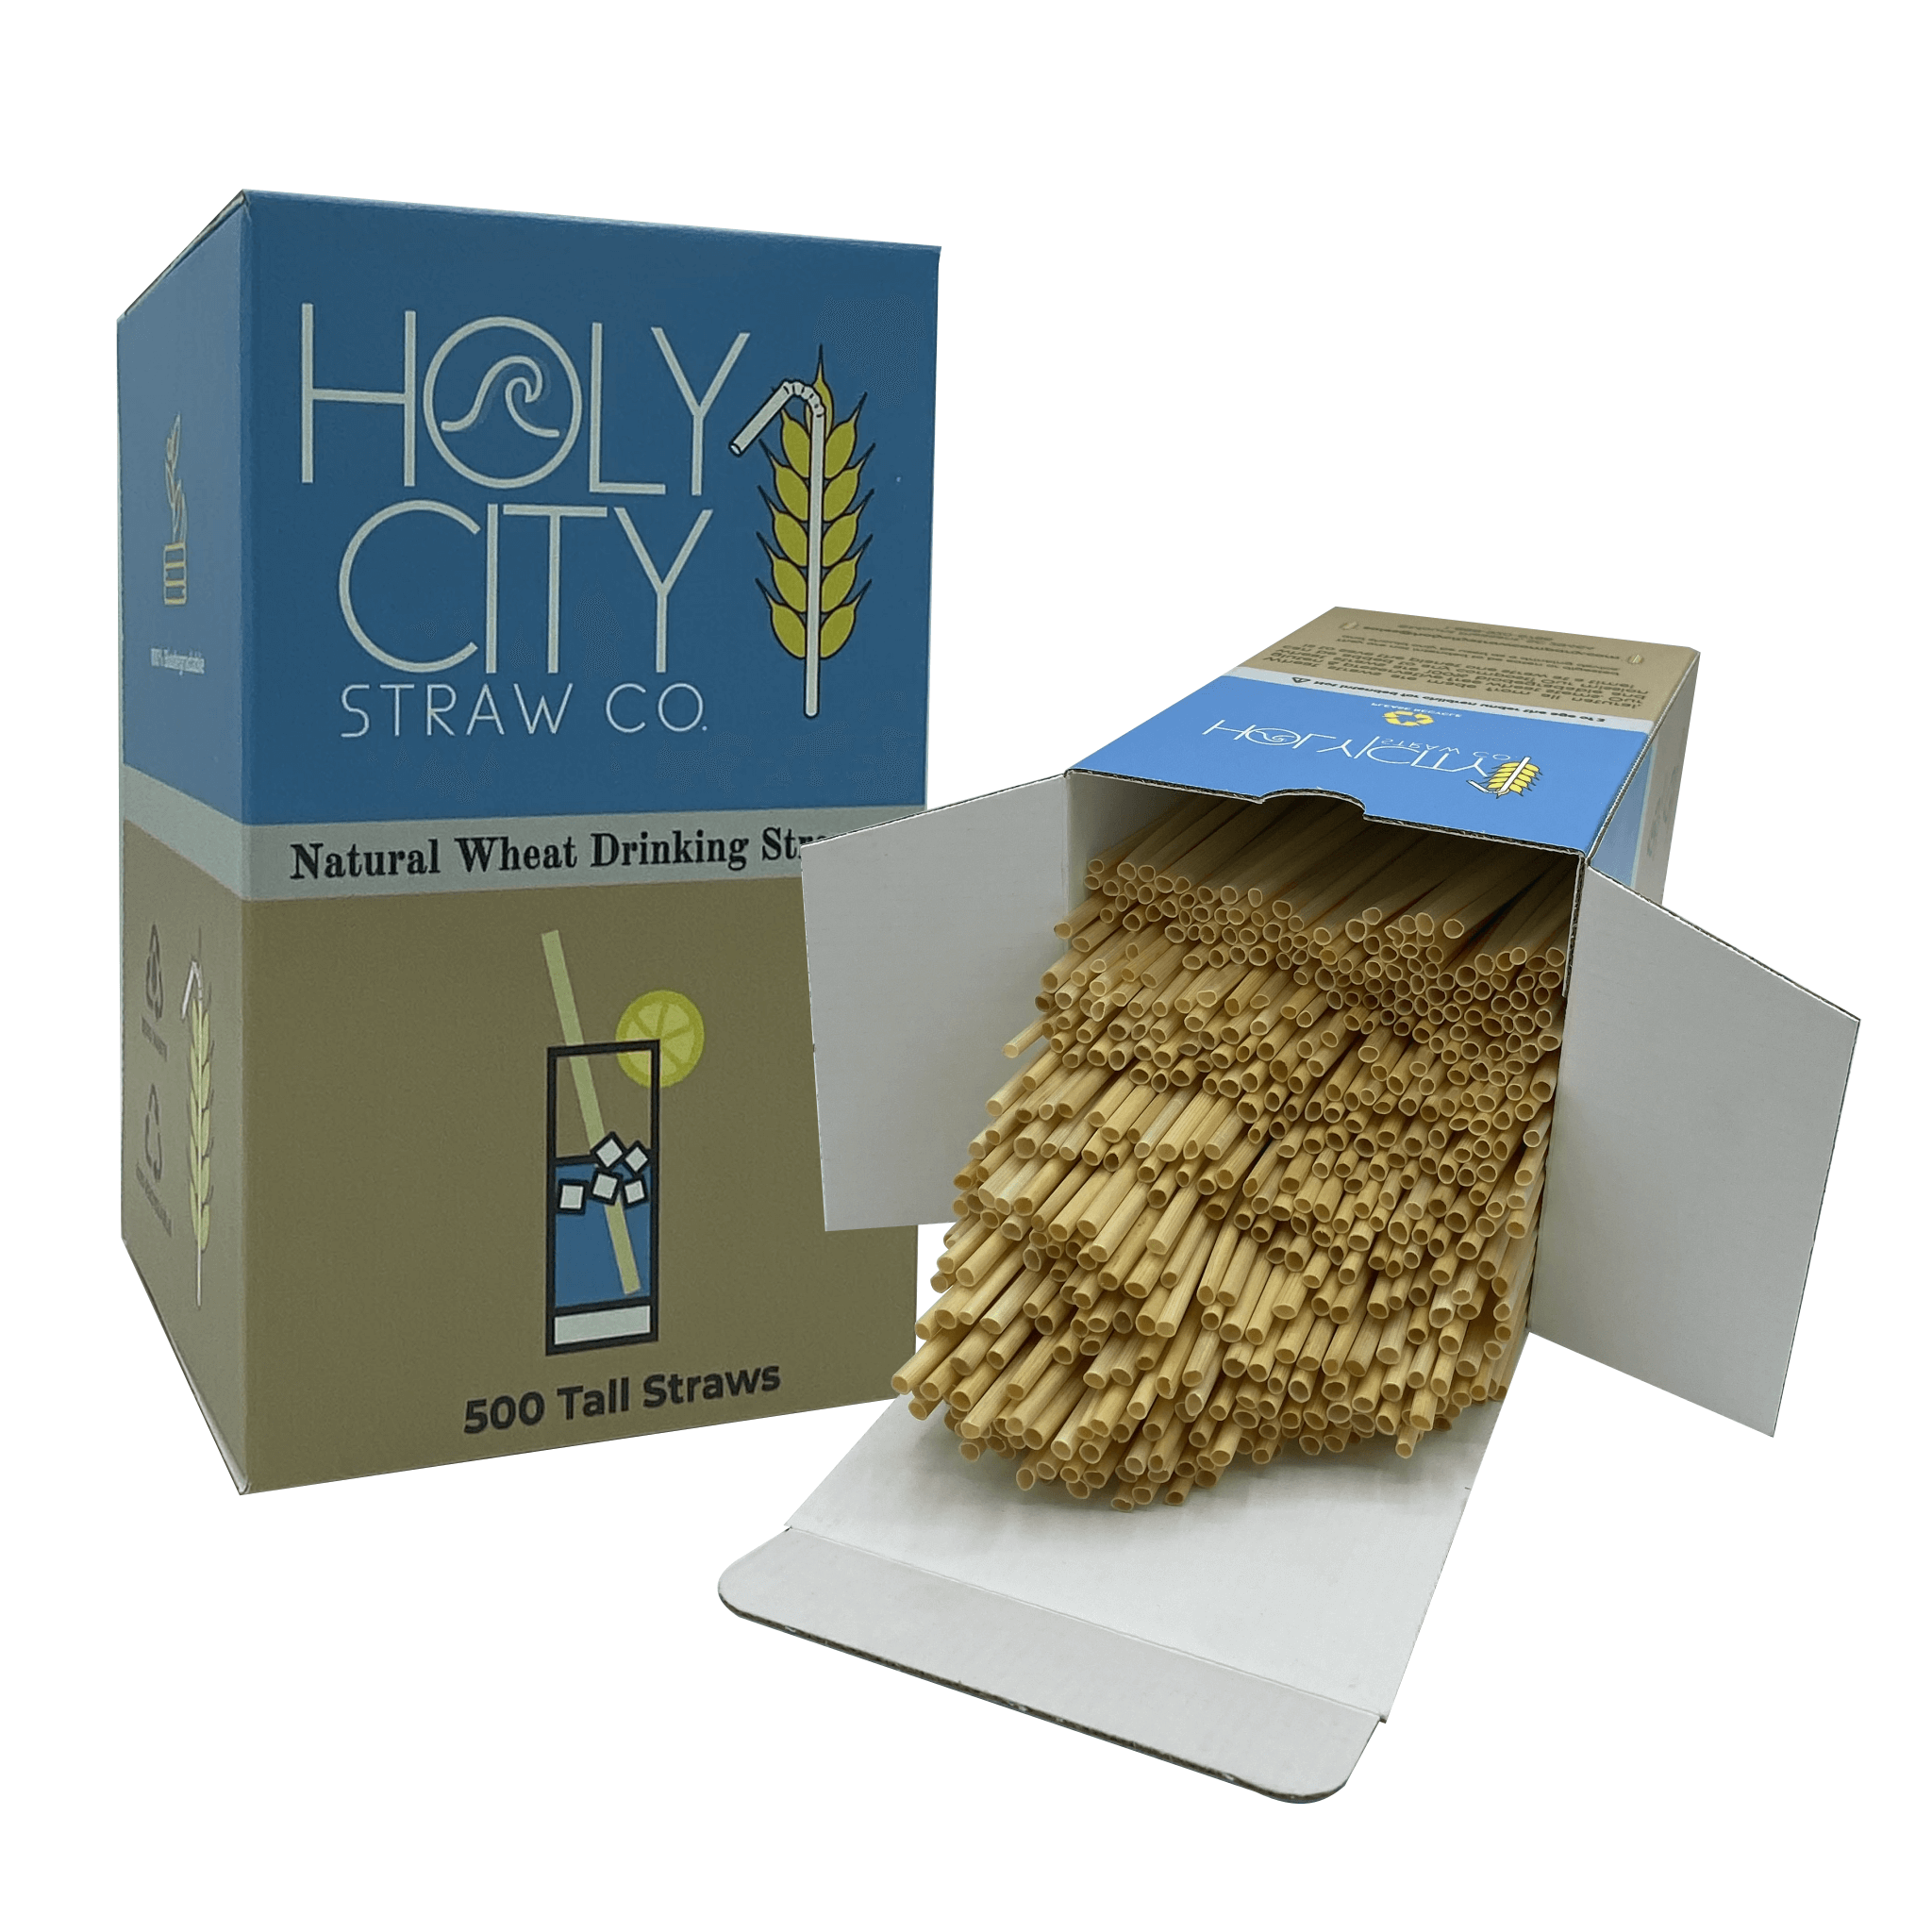 500 count box of Holy City Straw Company Tall wheat straws next to a box open with straws coming out.